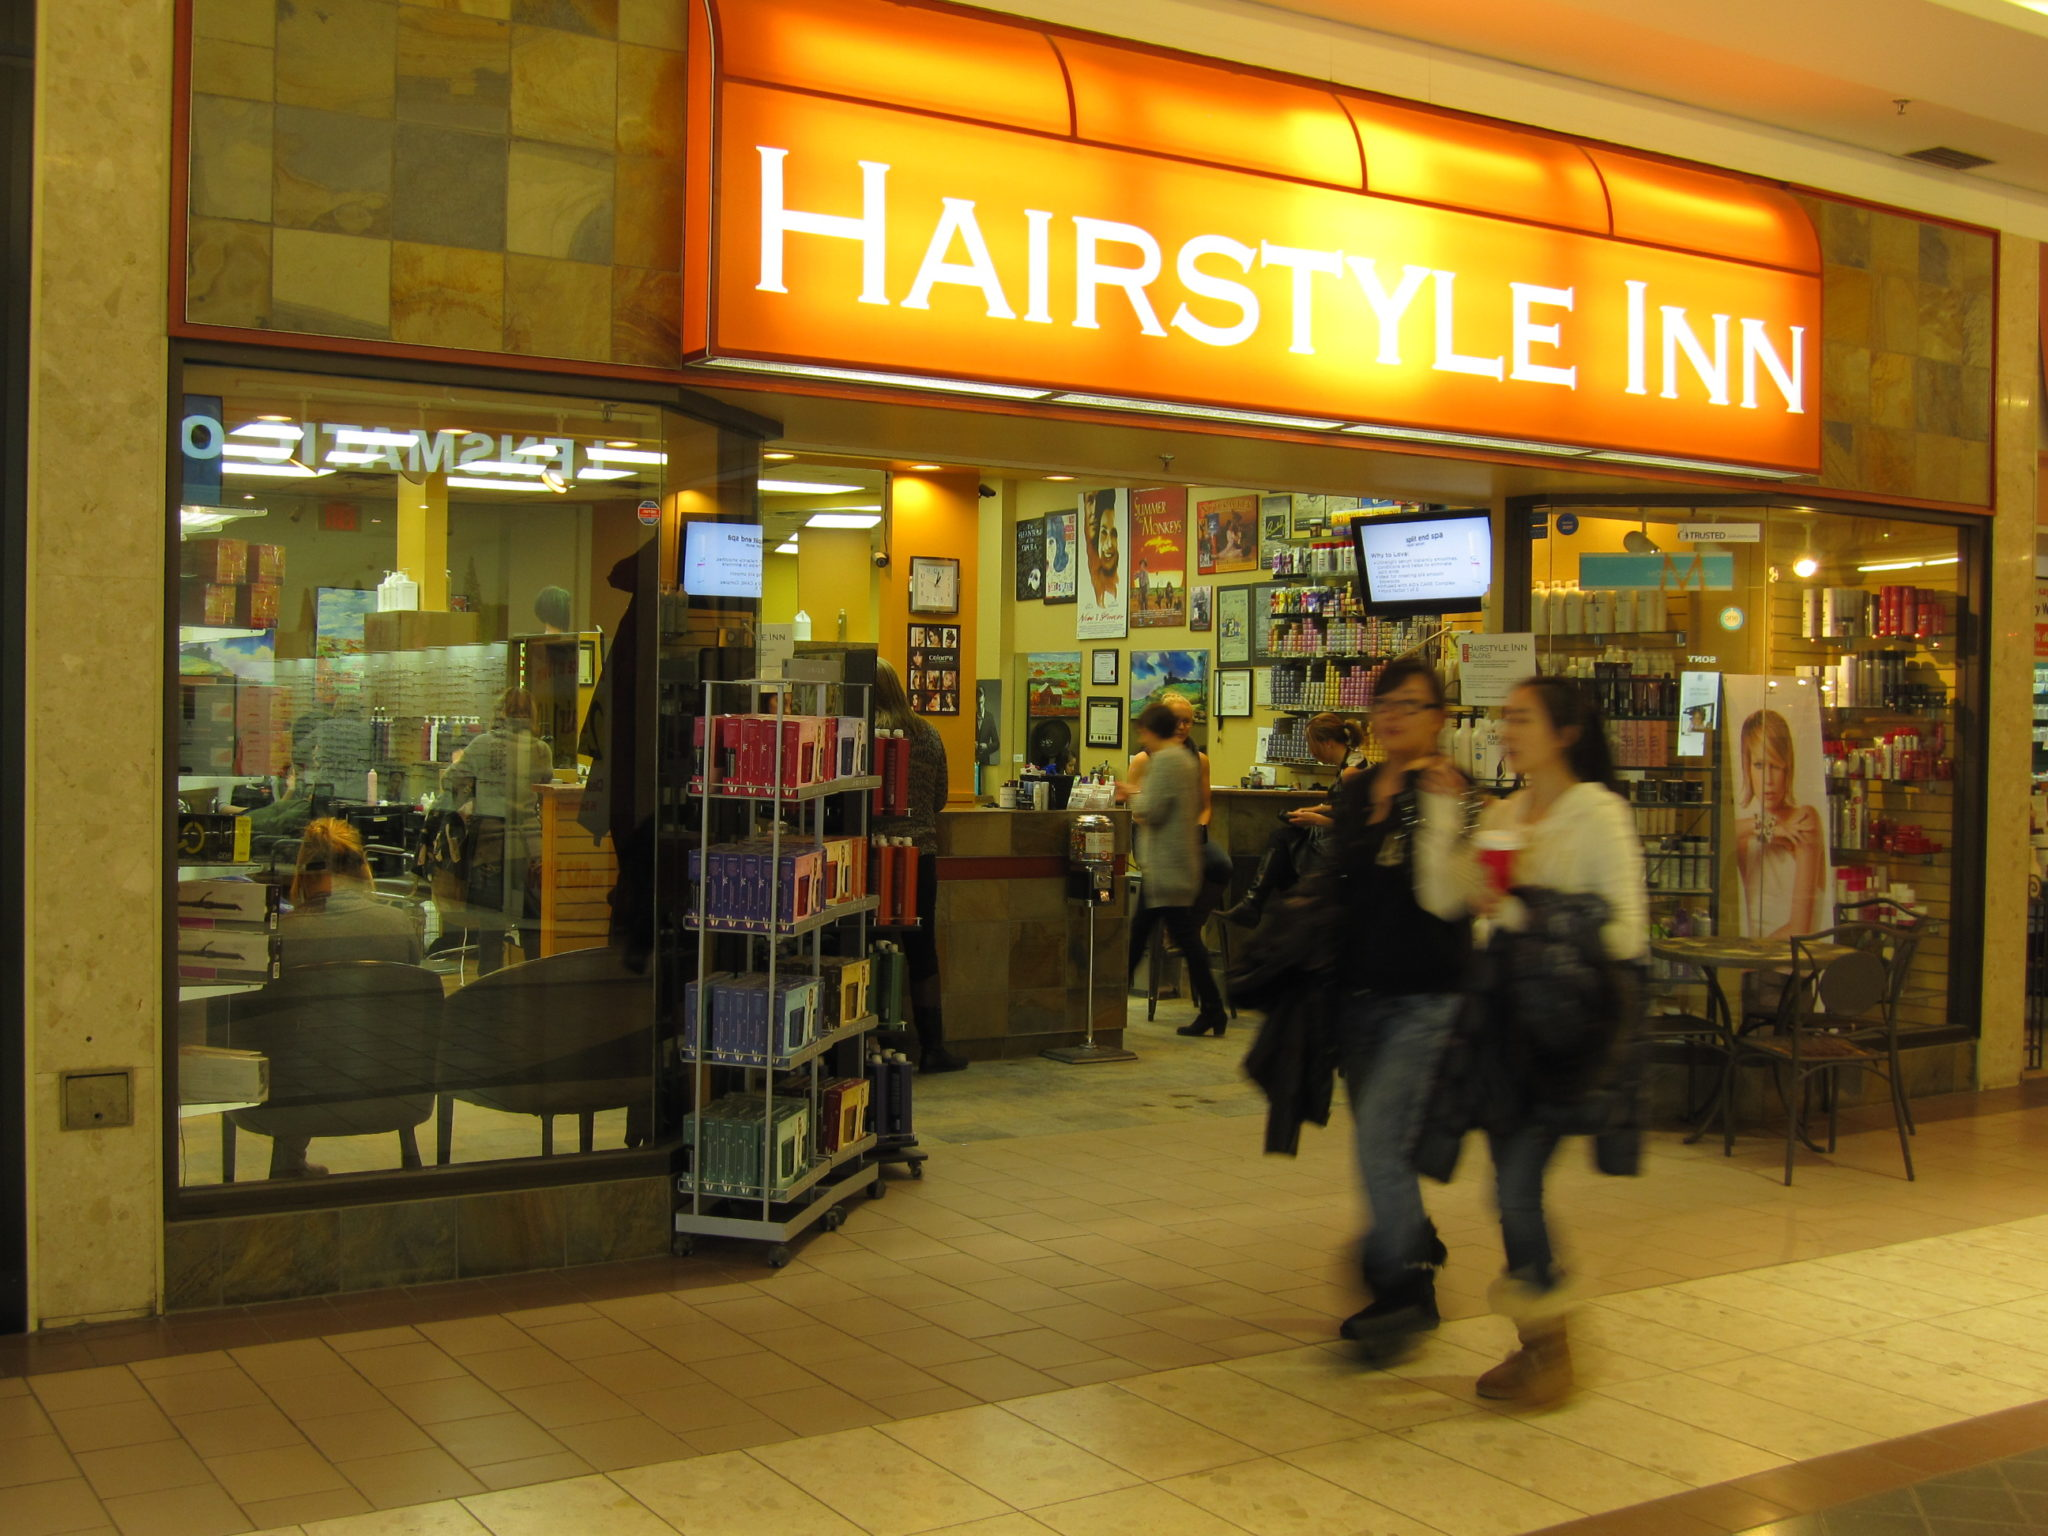 Hairstyle Inn Salon at the Centre Mall Saskatoon